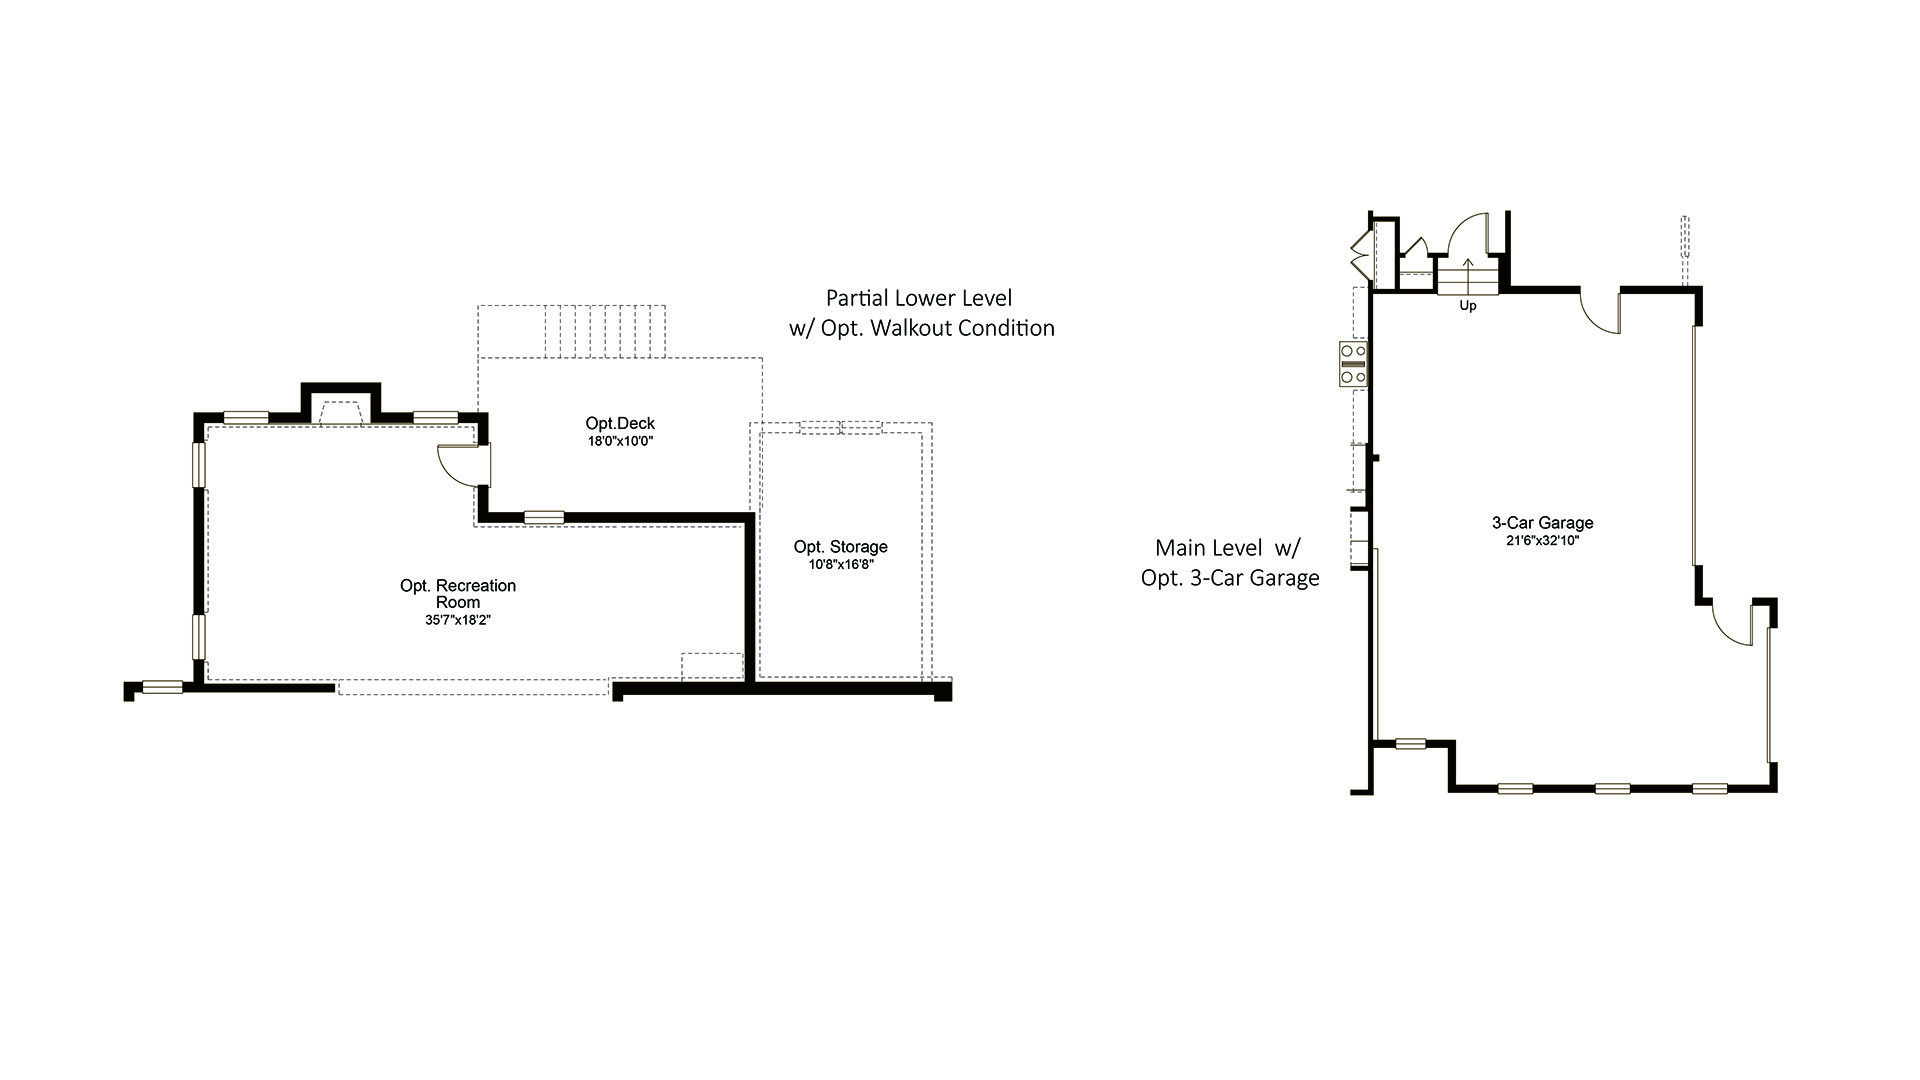 Ashcroft - Fallsgate Series - Available Features, including Optional Walk-out Condition and 3-Car Garage.